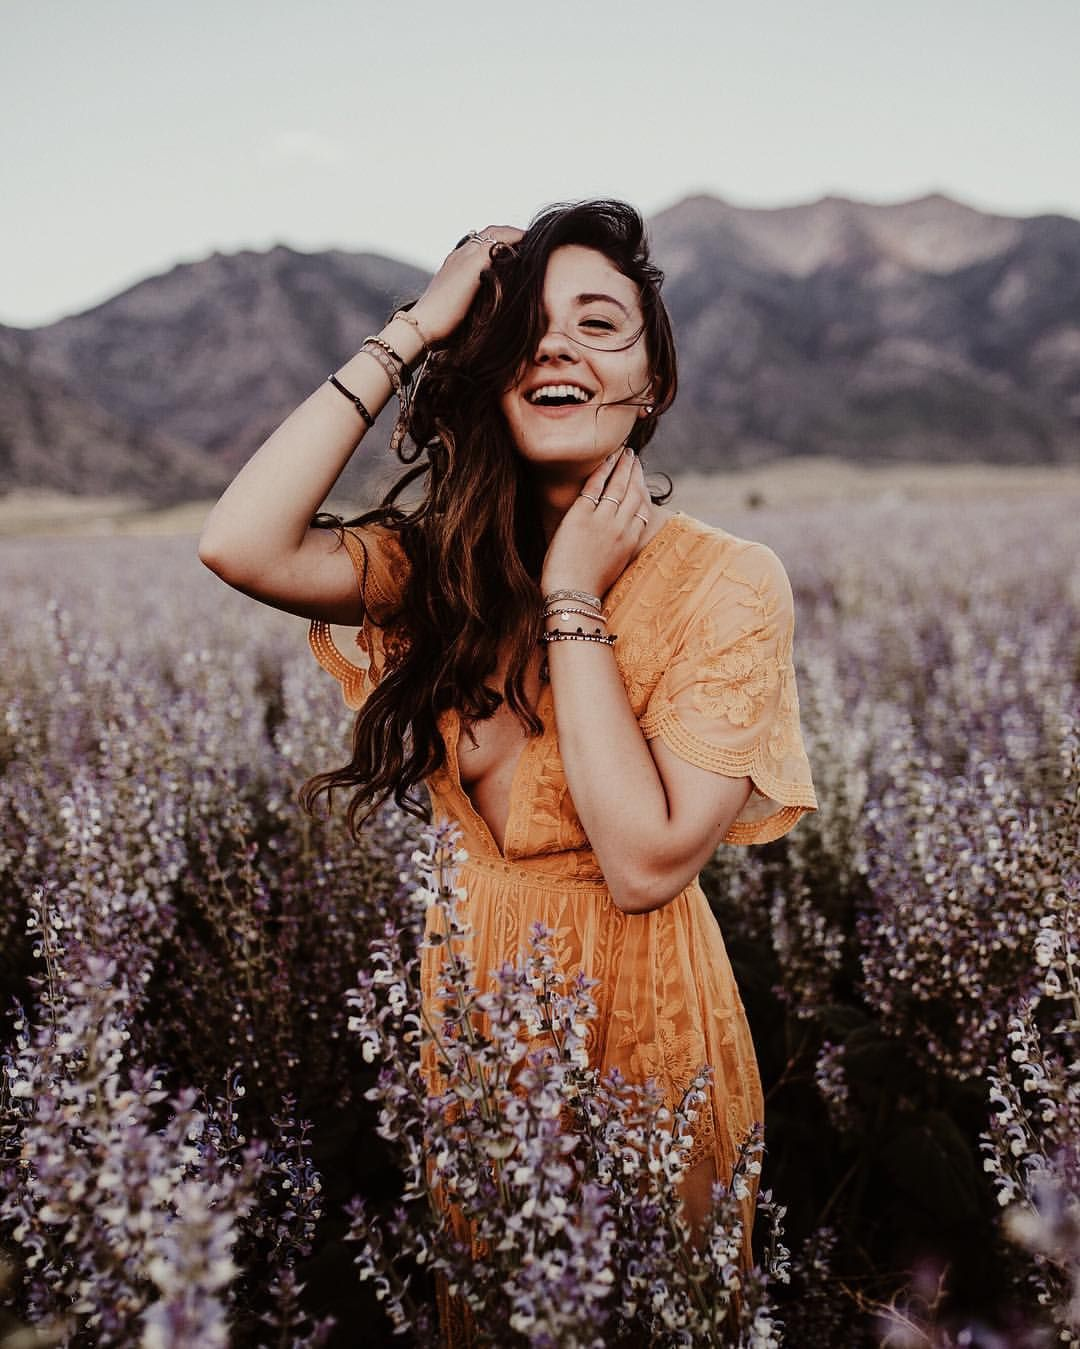 Allegra Rose Edwards danced around some lavender fields in utah & decided that